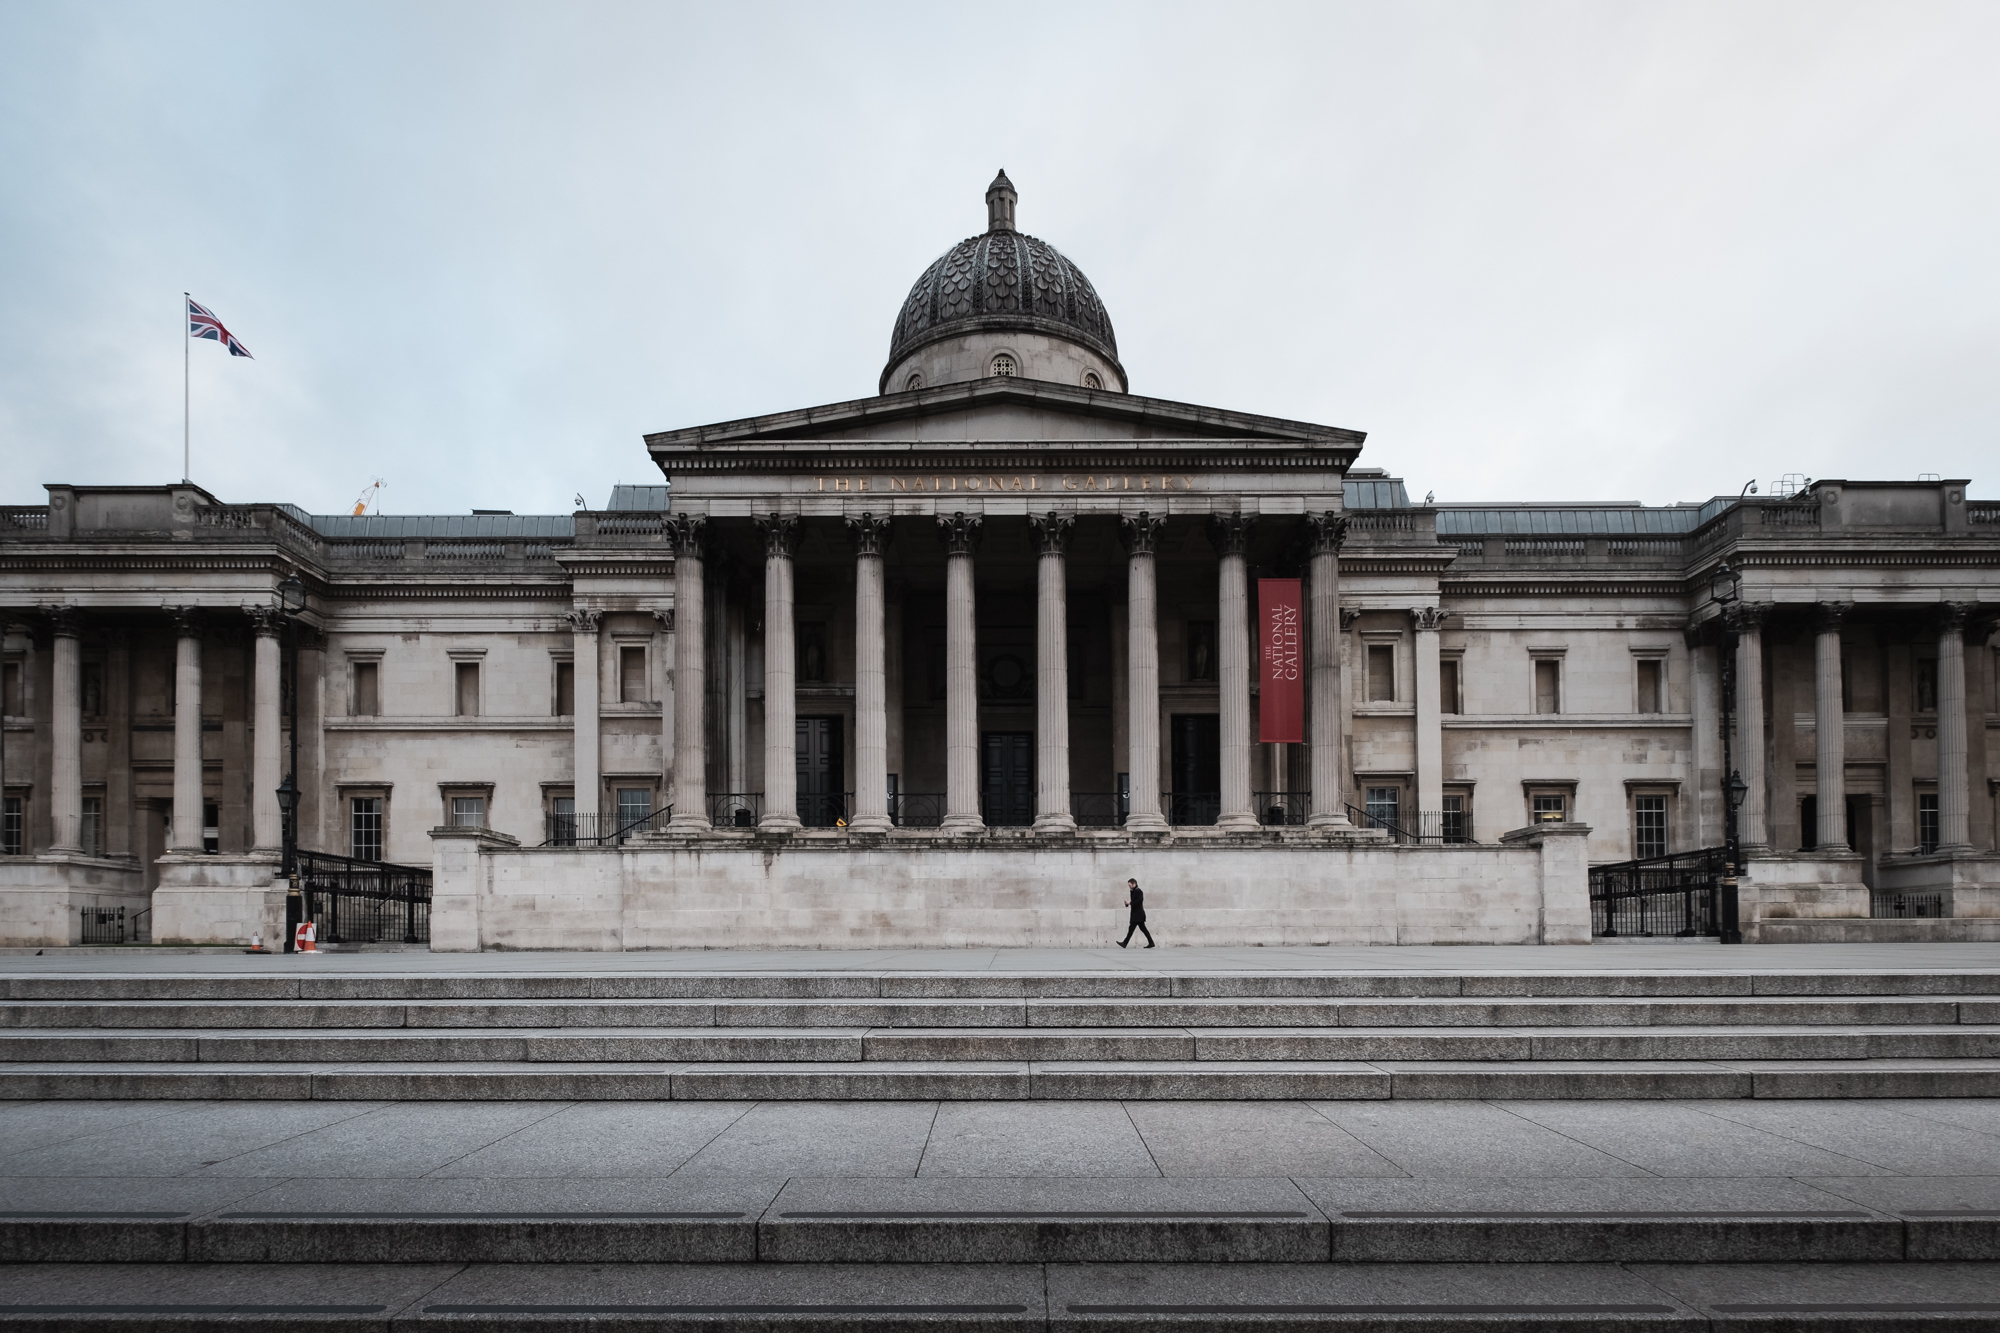 A photo of The National Portrait Gallery in Trafalgar Square, London taken by Trevor Sherwin